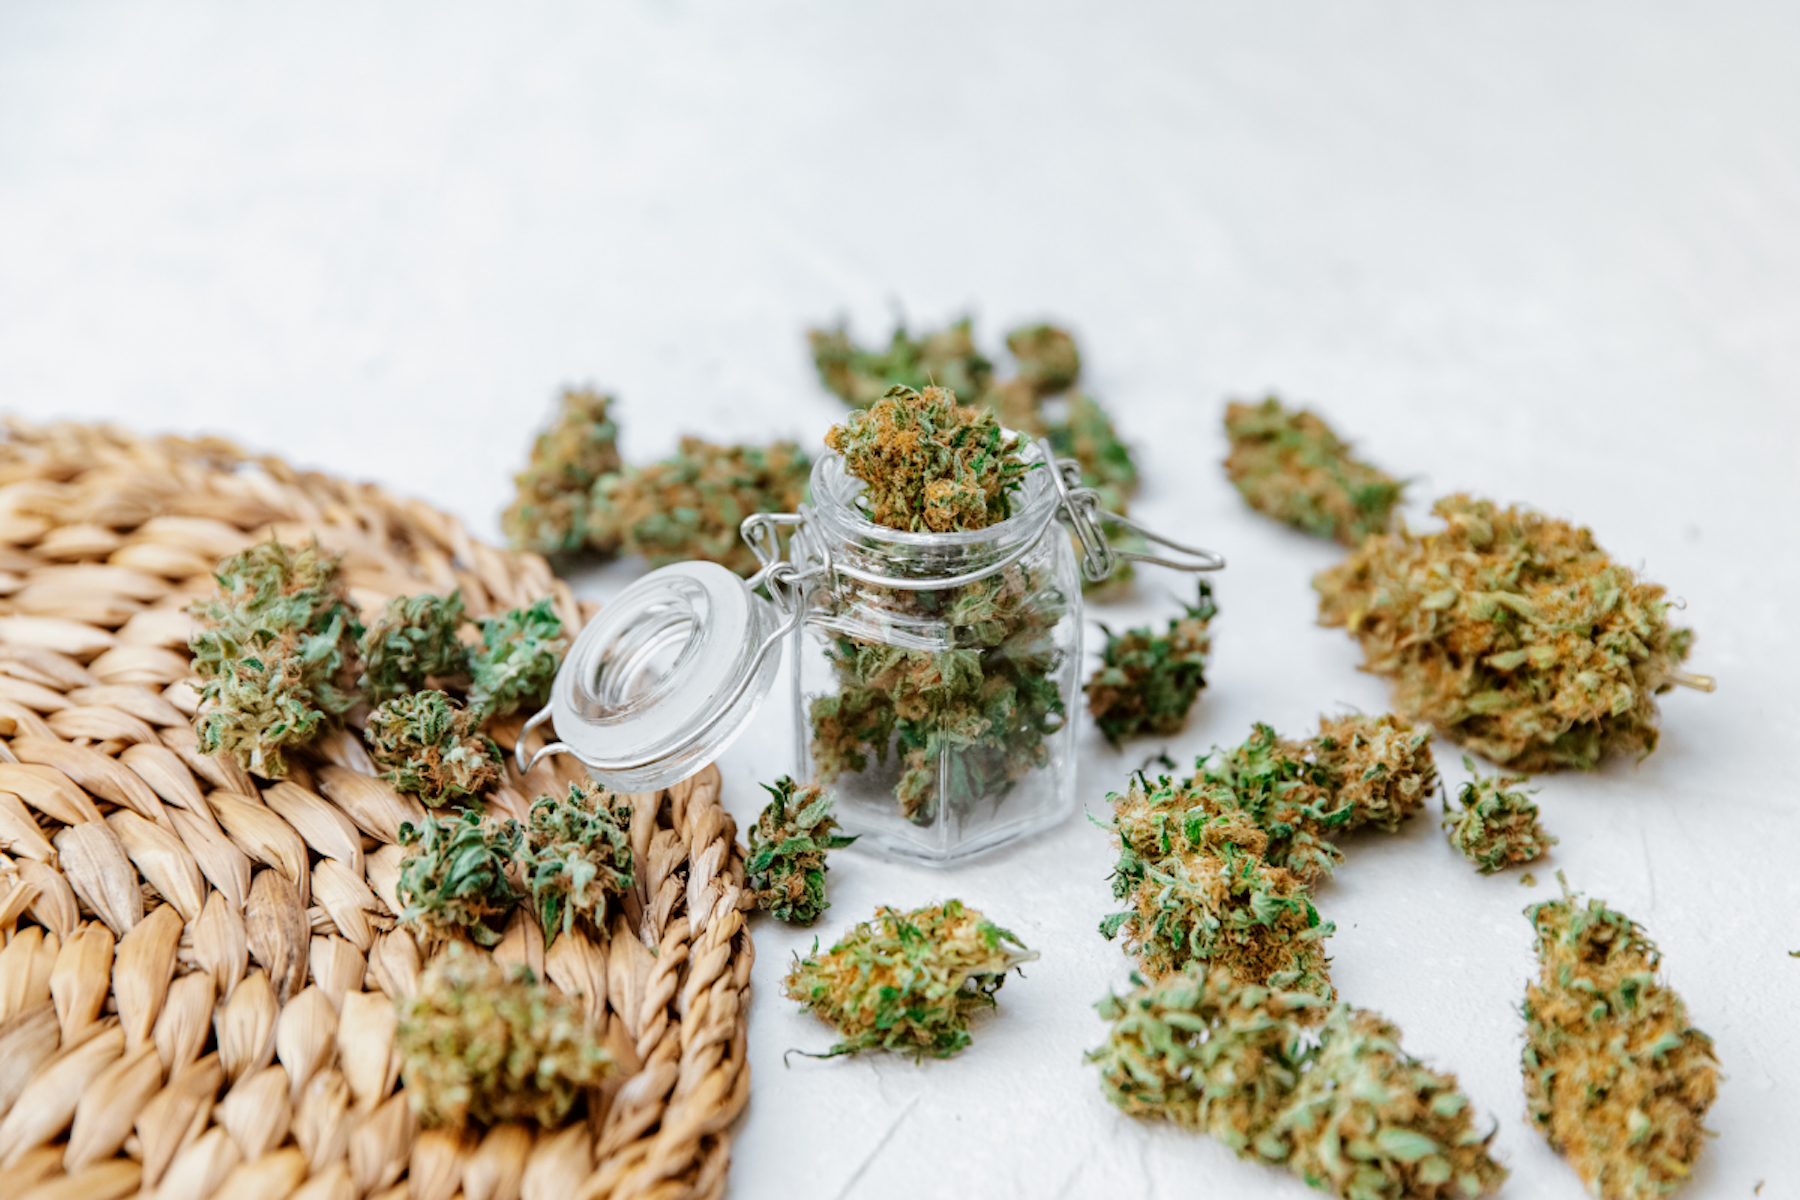 CBD Flower: Best CBD Hemp Flower Strains in 2020 - D Magazine